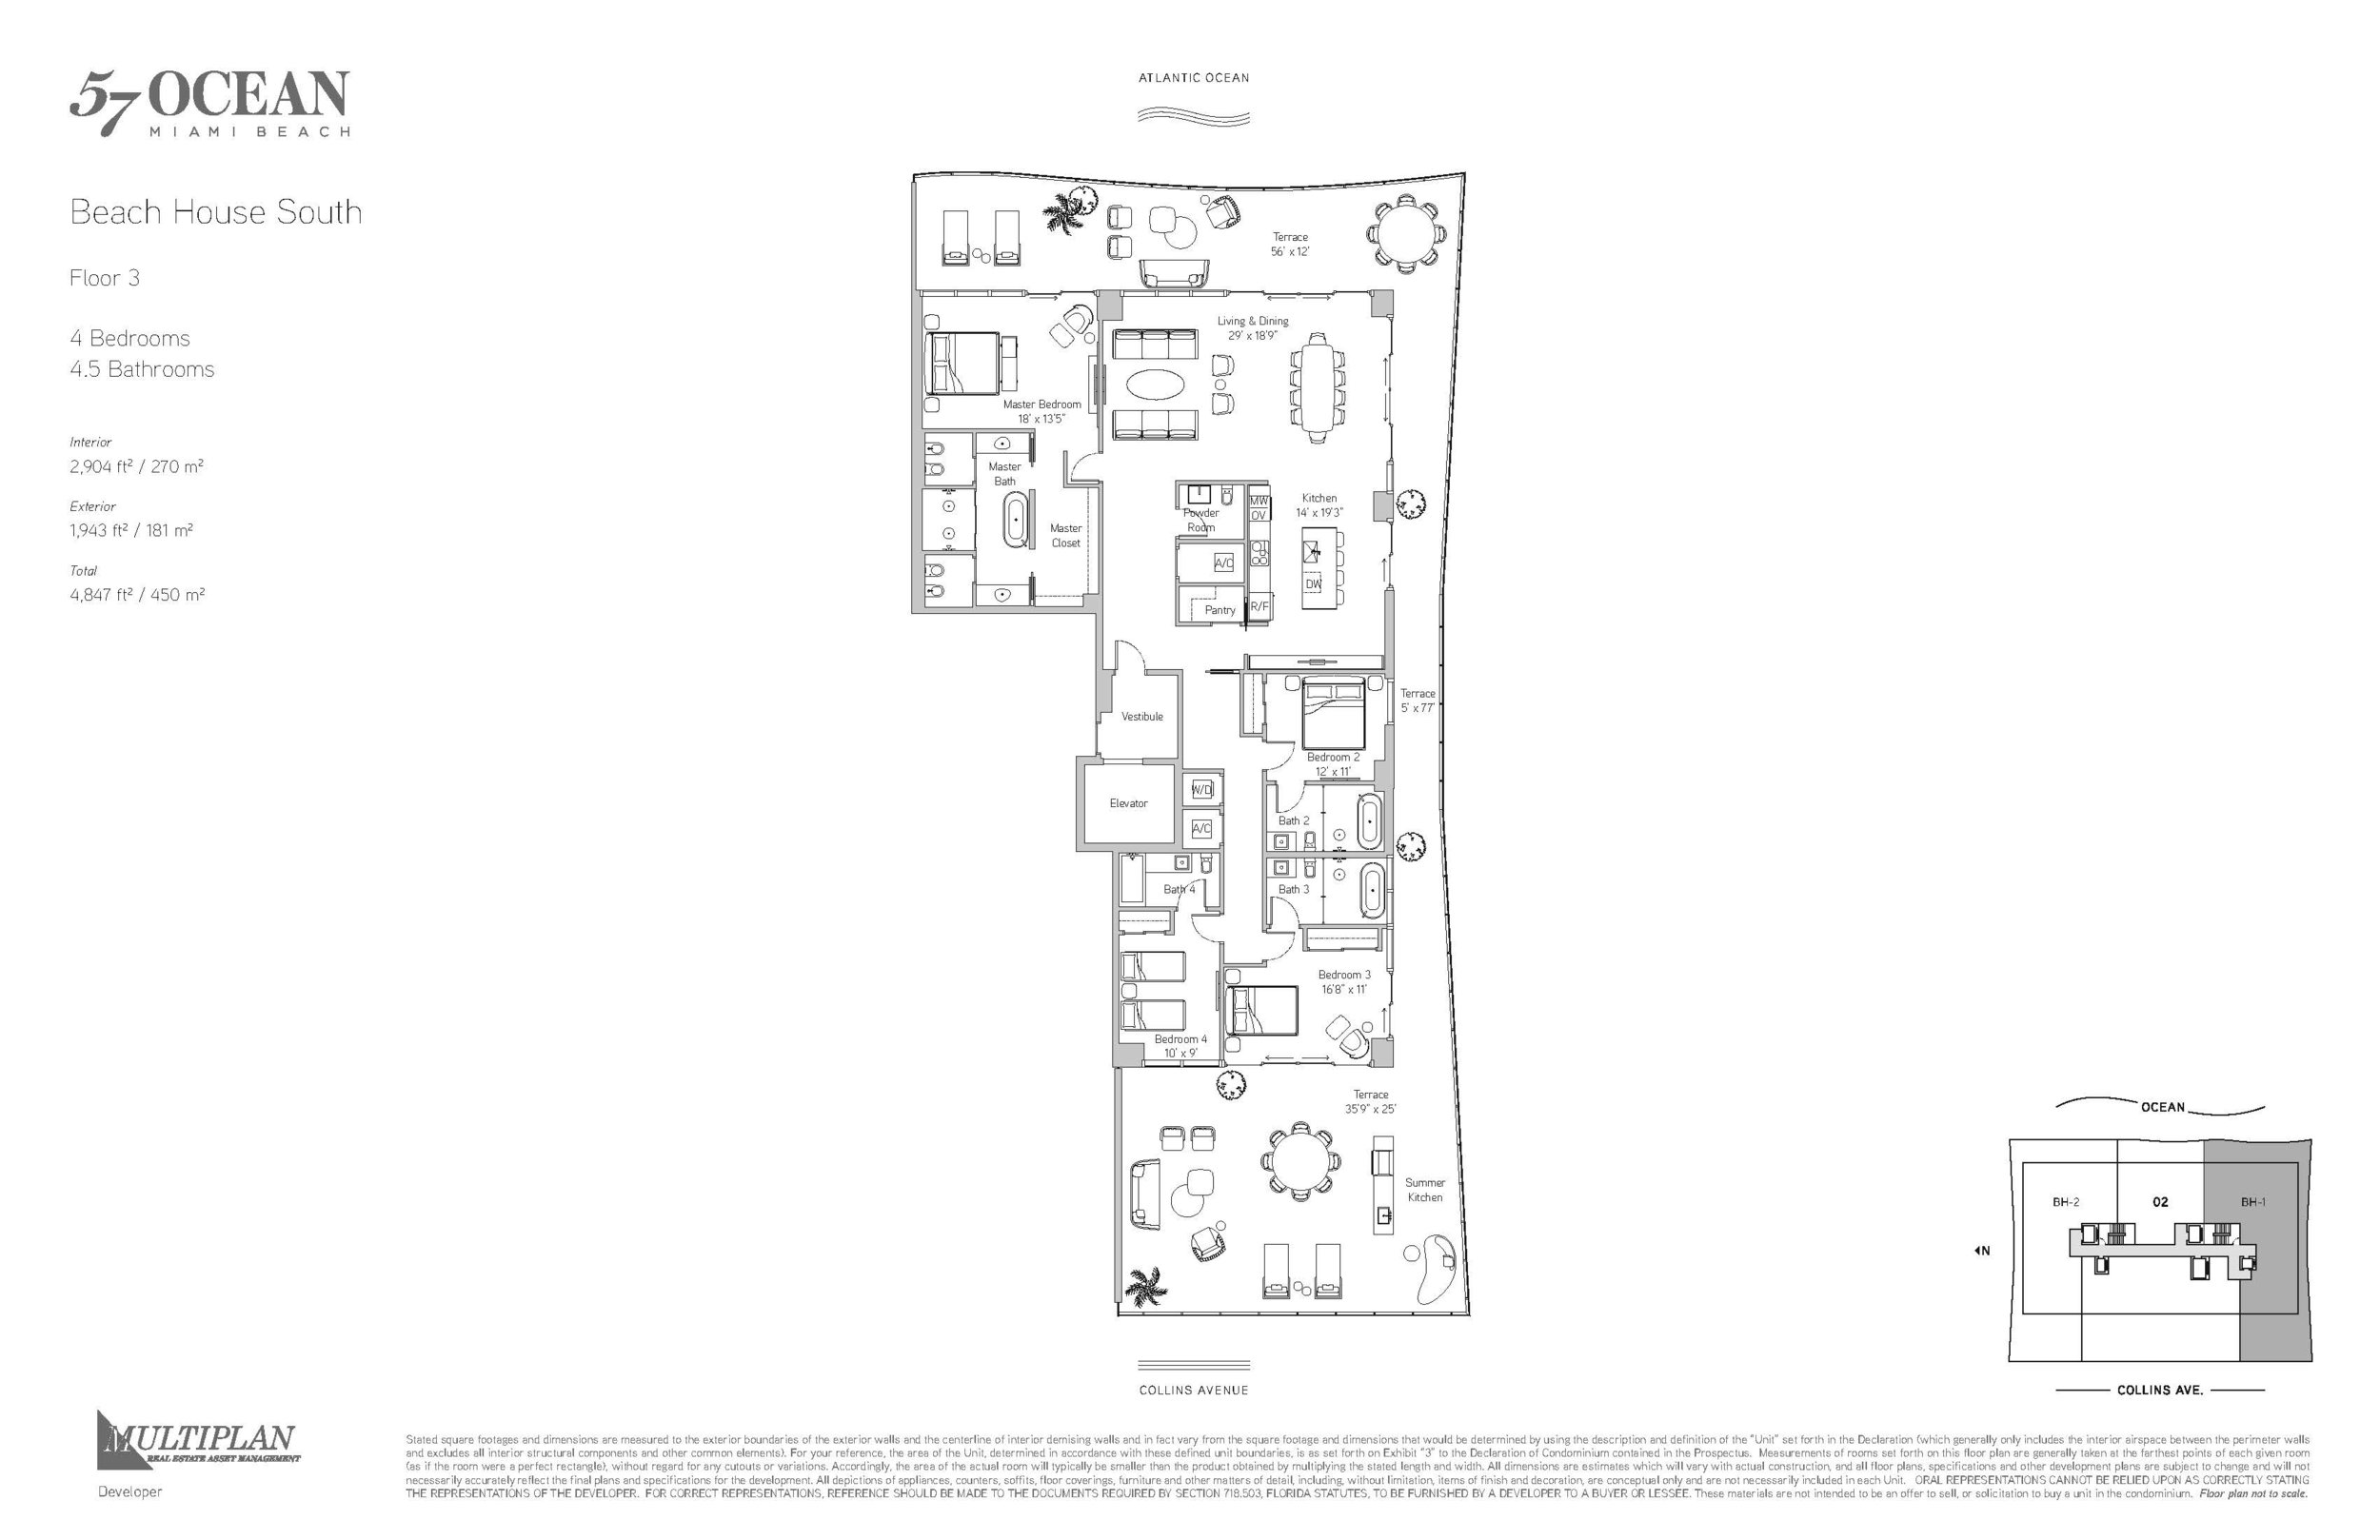 57 Ocean Floor Plans - 4 Bedroom Beach House South